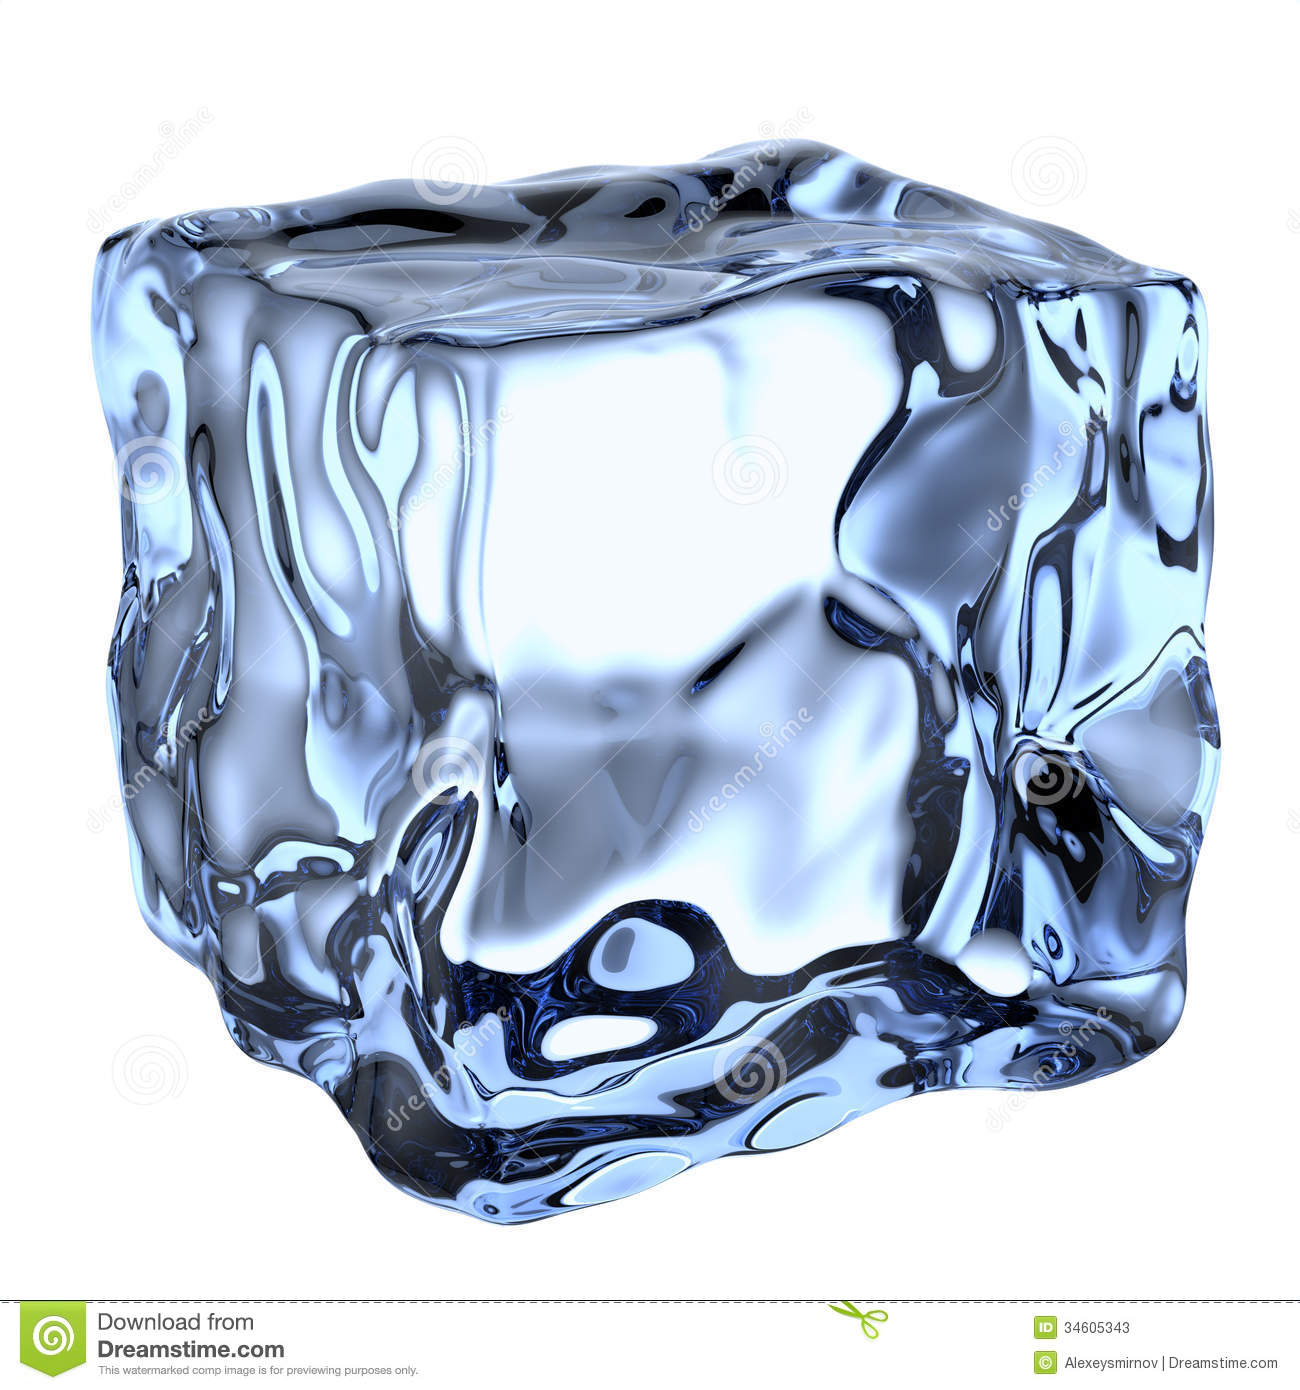 how to make crystal clear ice blocks